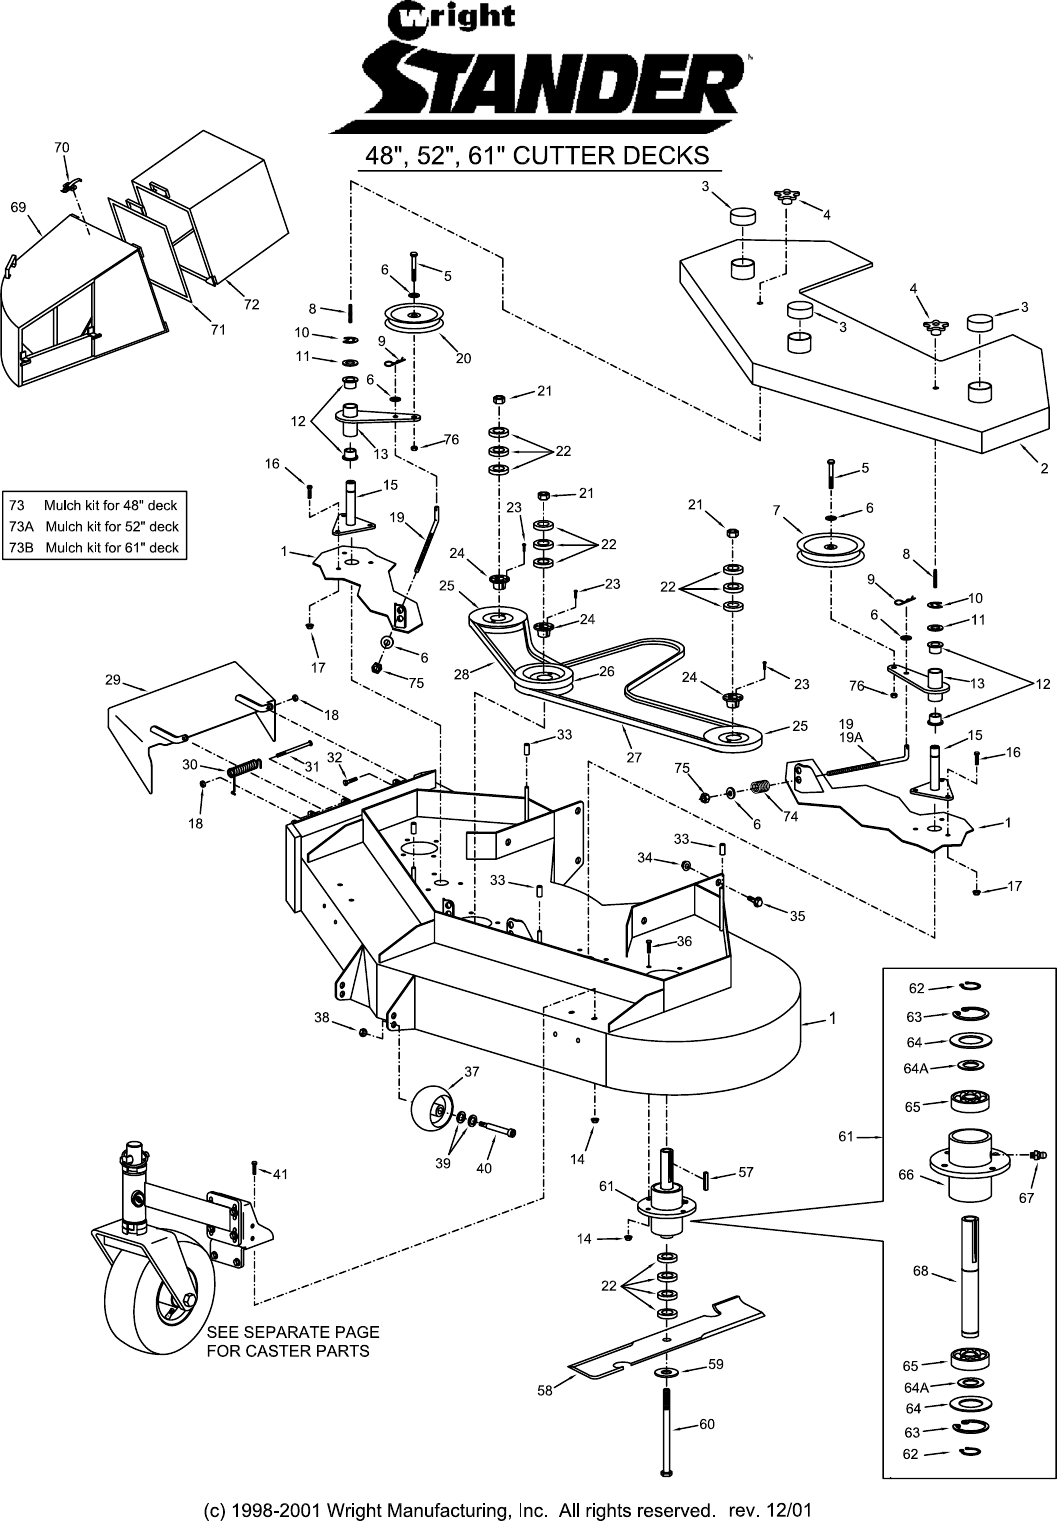 Drive belt 3 user manual array page 3 of wright manufacturing lawn mower 61 user guide rh lawnandgarden manualsonline com fandeluxe Gallery